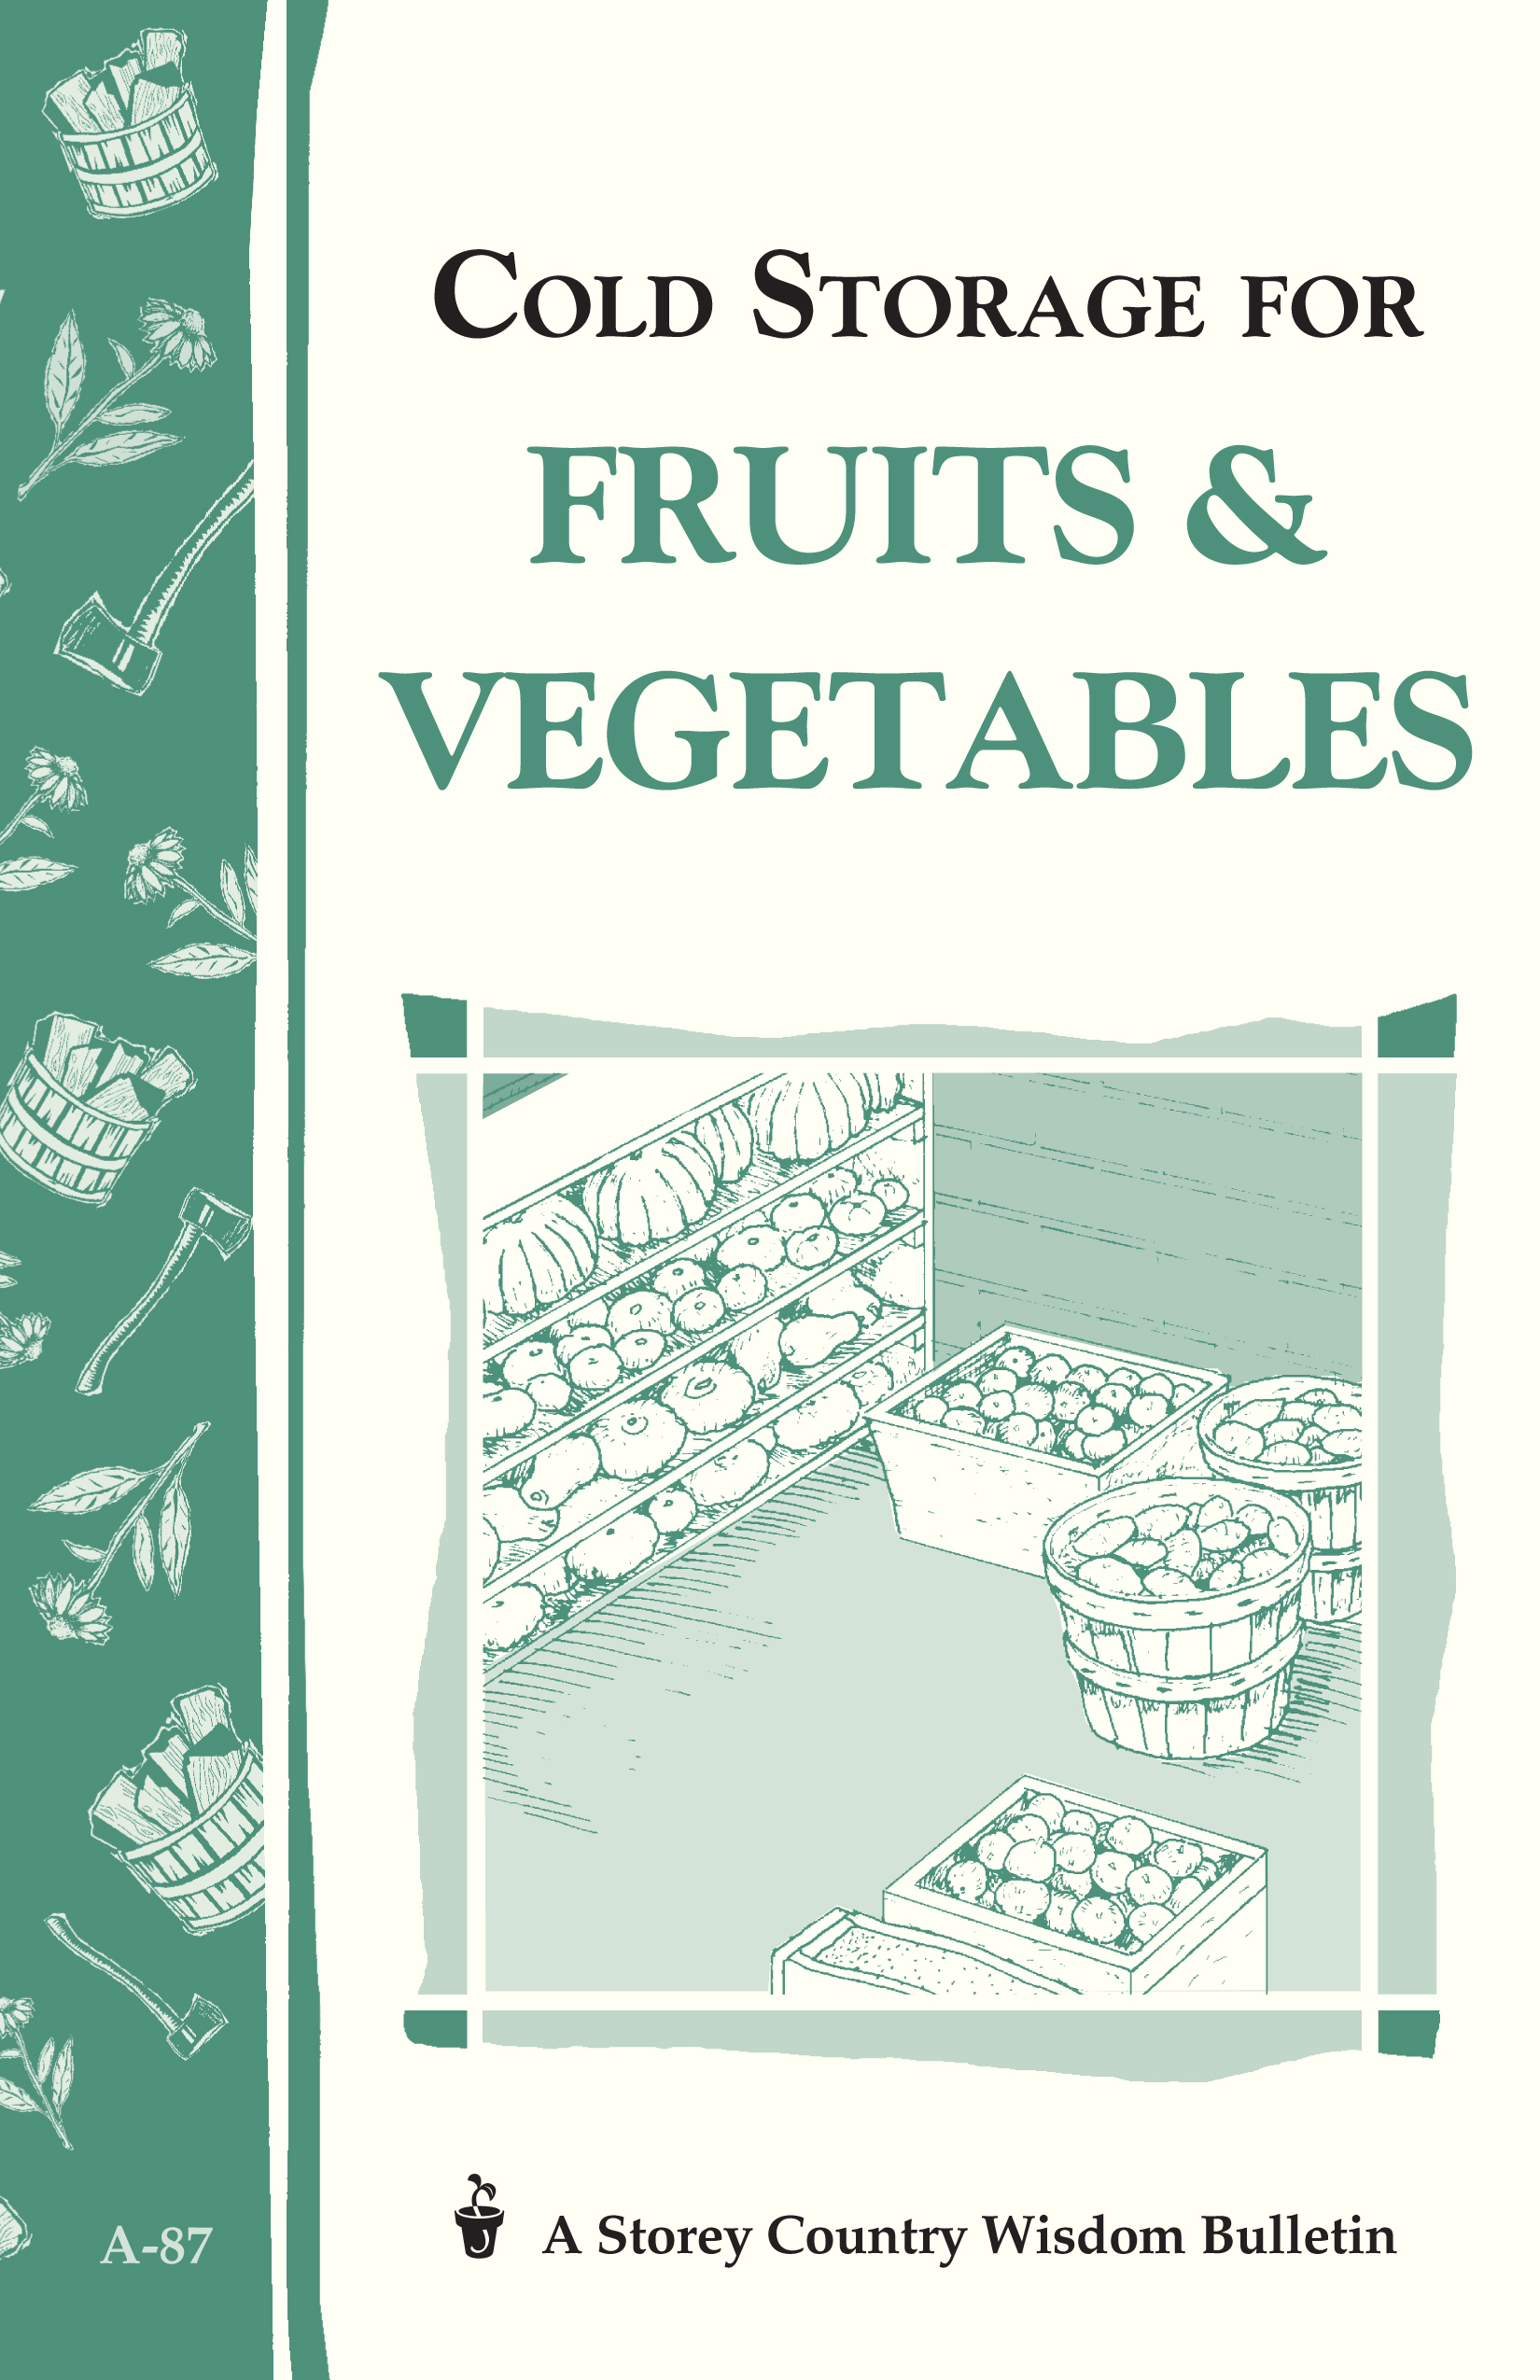 Cold Storage for Fruits & Vegetables Storey Country Wisdom Bulletin A-87 - John Storey